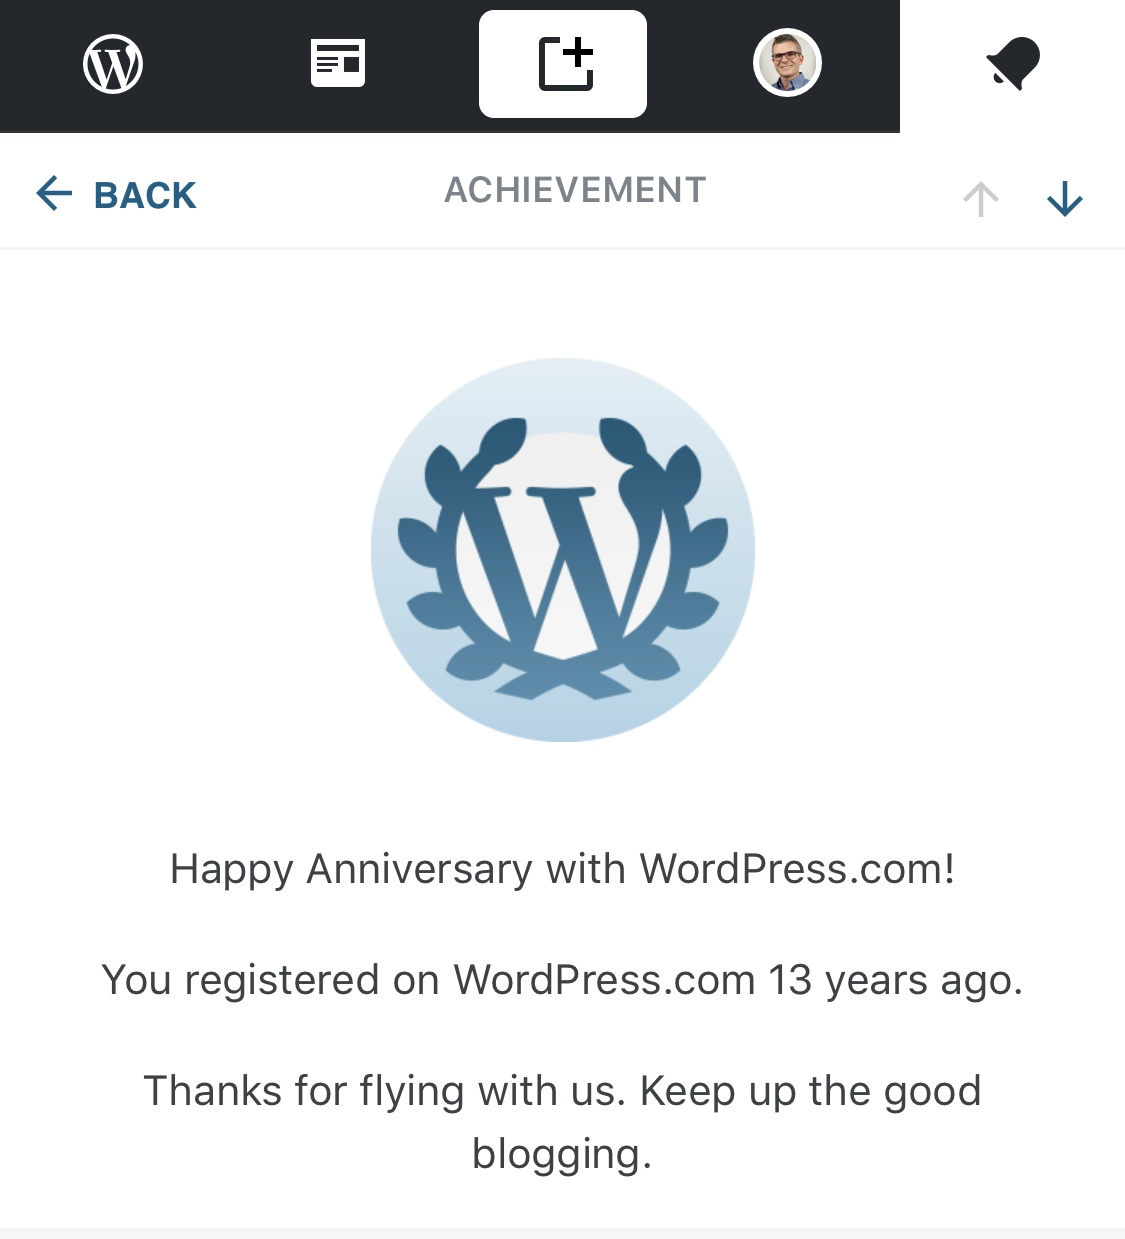 Happy anniversary with WordPress.com! You registered with WordPress.com 13 years ago. Thanks for flying with us. Keep up the good blogging.